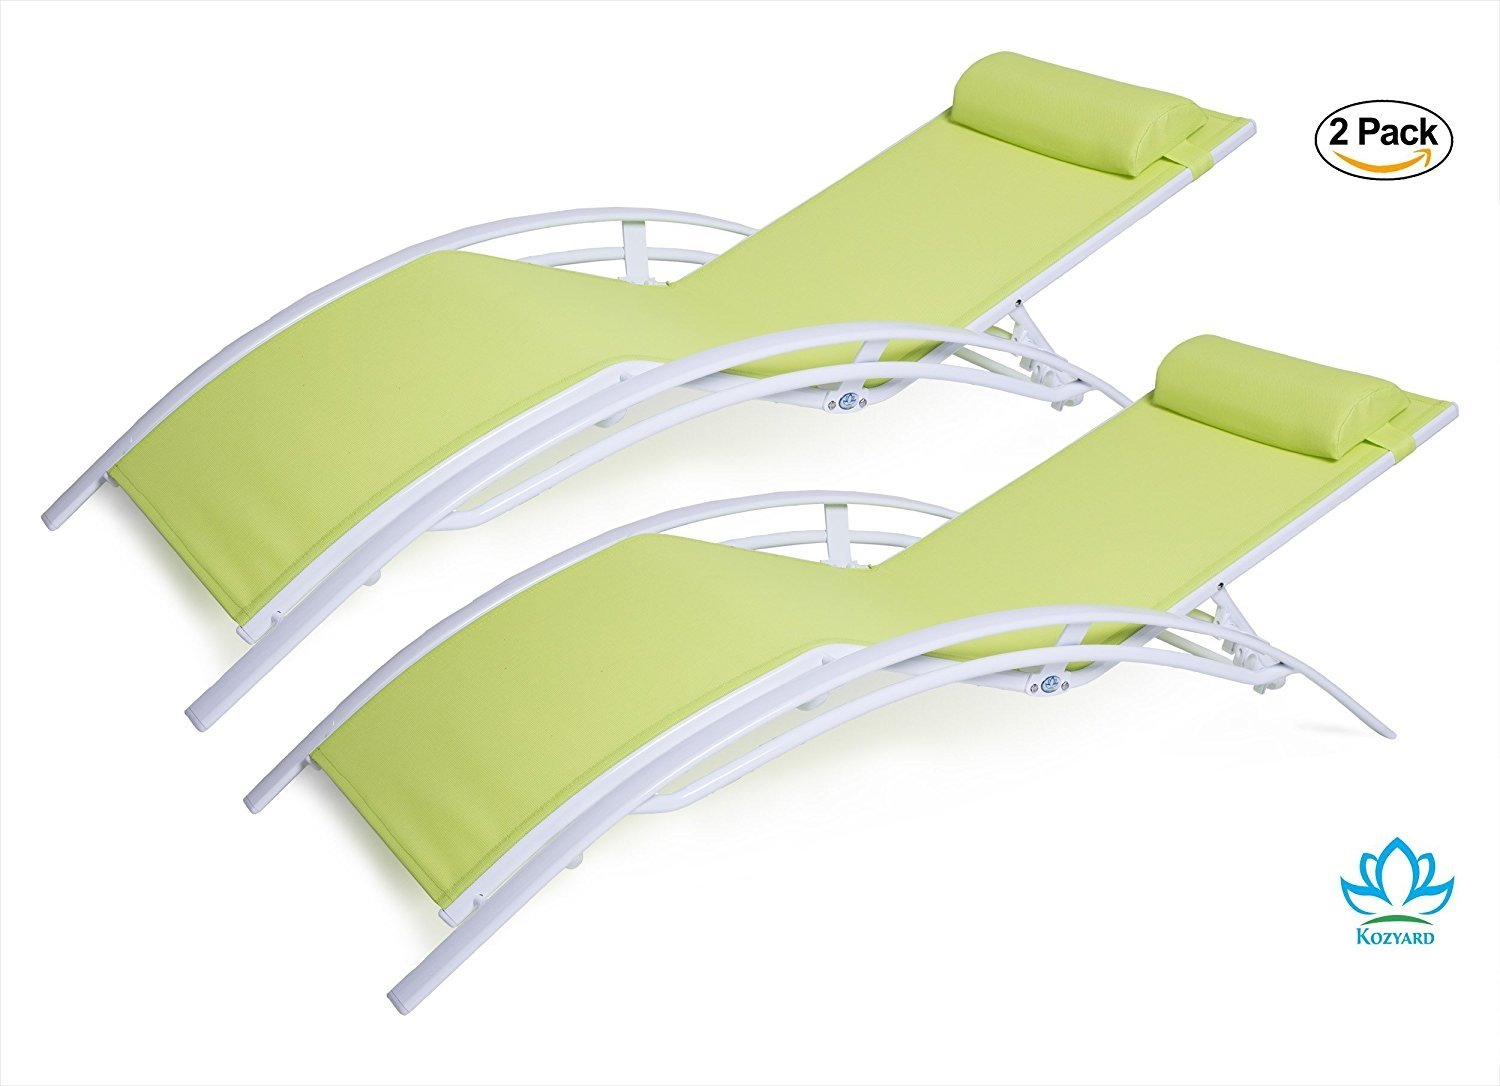 Sunbathing Chairs Kozyard Kozylounge Elegant Patio Reclining Adjustable Chaise Lounge Aluminum And Textilene Sunbathing Chair For All Weather With Headrest 2 Pack